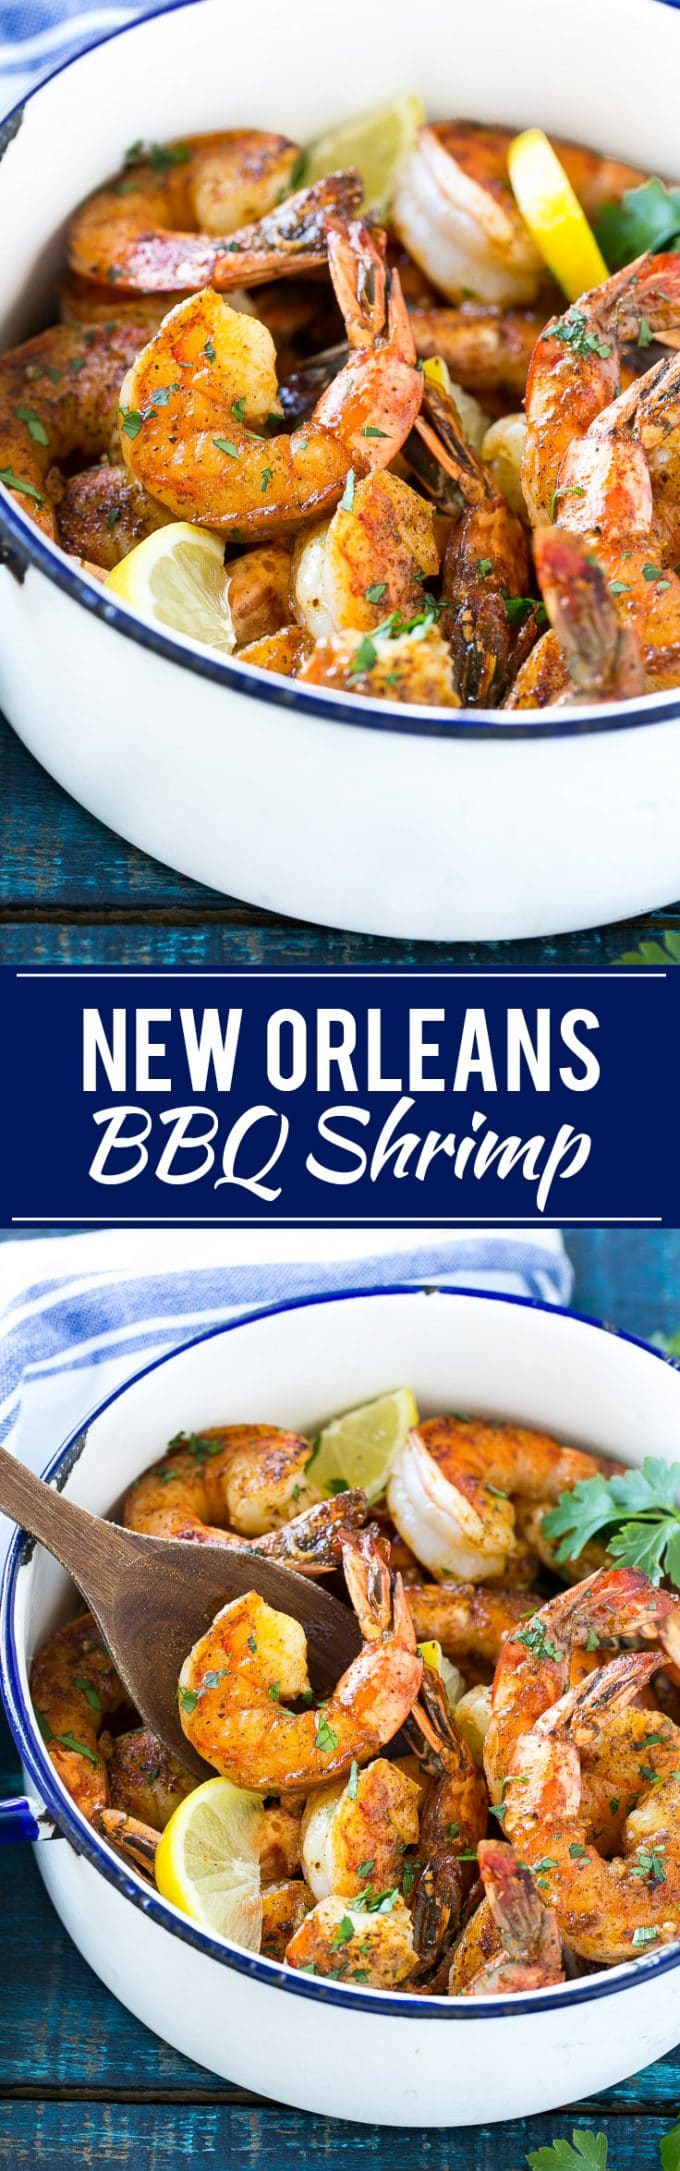 New Orleans BBQ Shrimp Recipe | Easy Shrimp Recipe | New Orleans ...